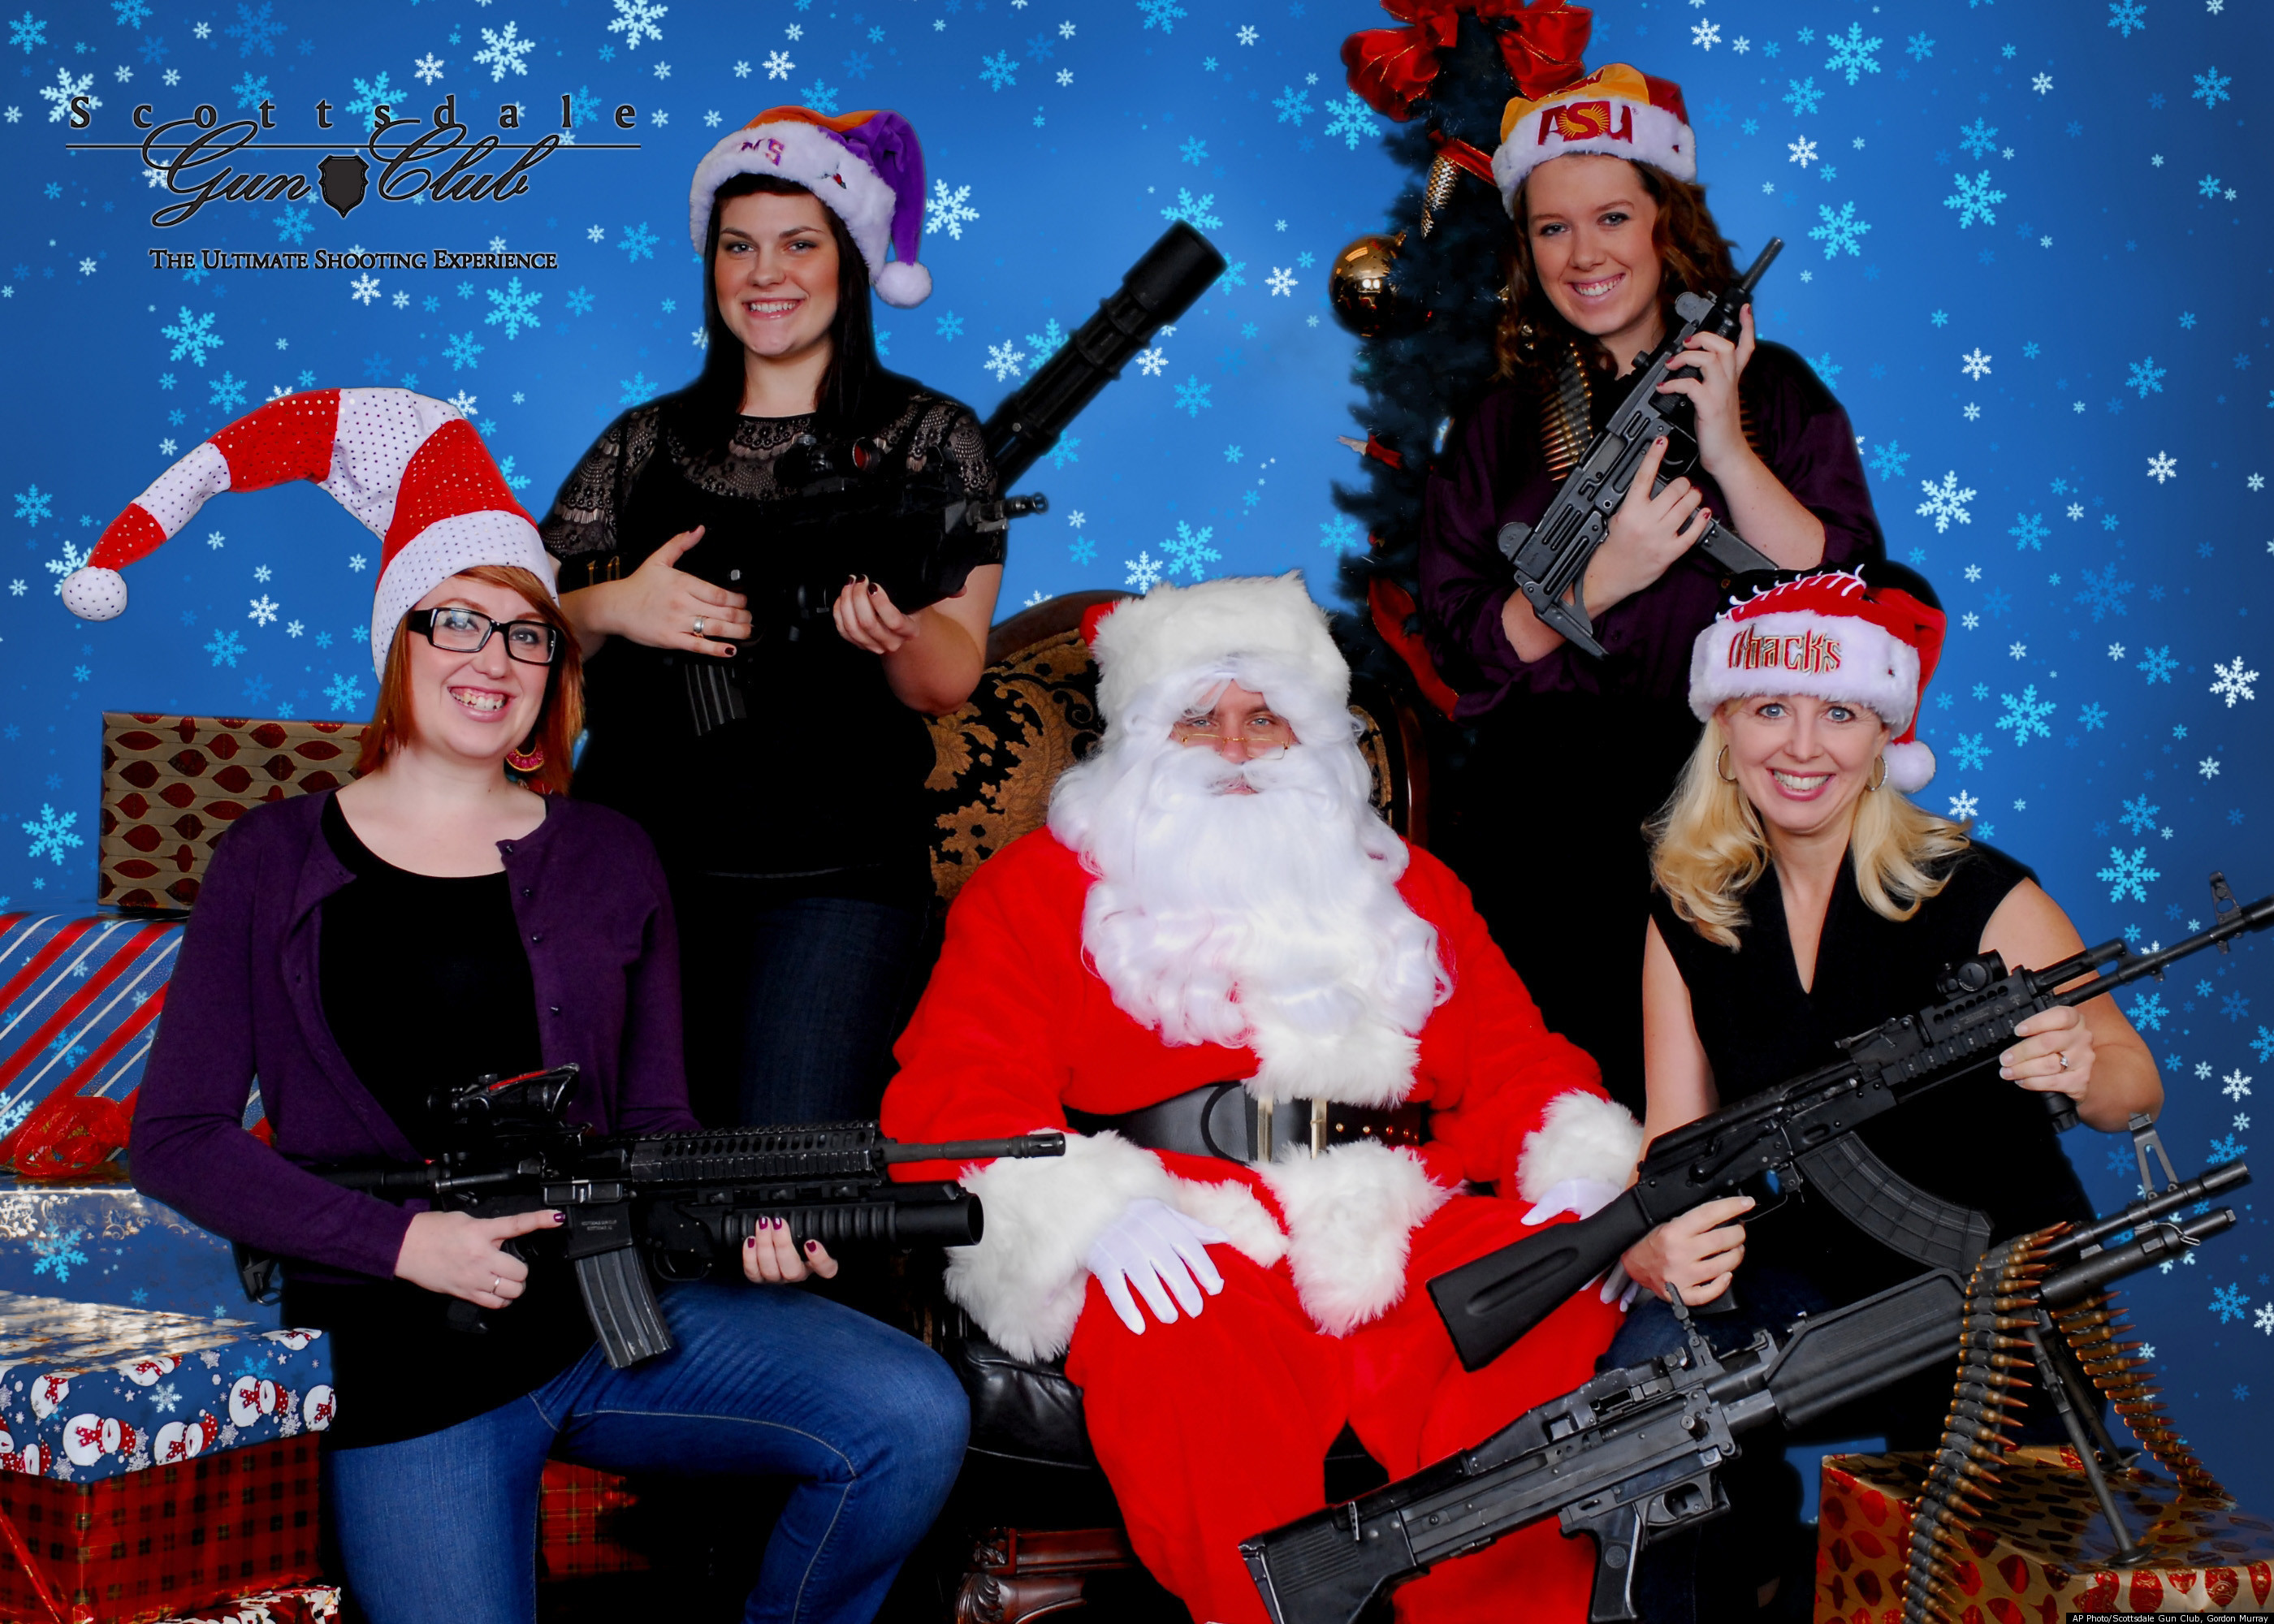 Machine Guns And Santa Claus: Arizona Gun Club Offers Alternative Christmas  Photoshoot (Pictures)